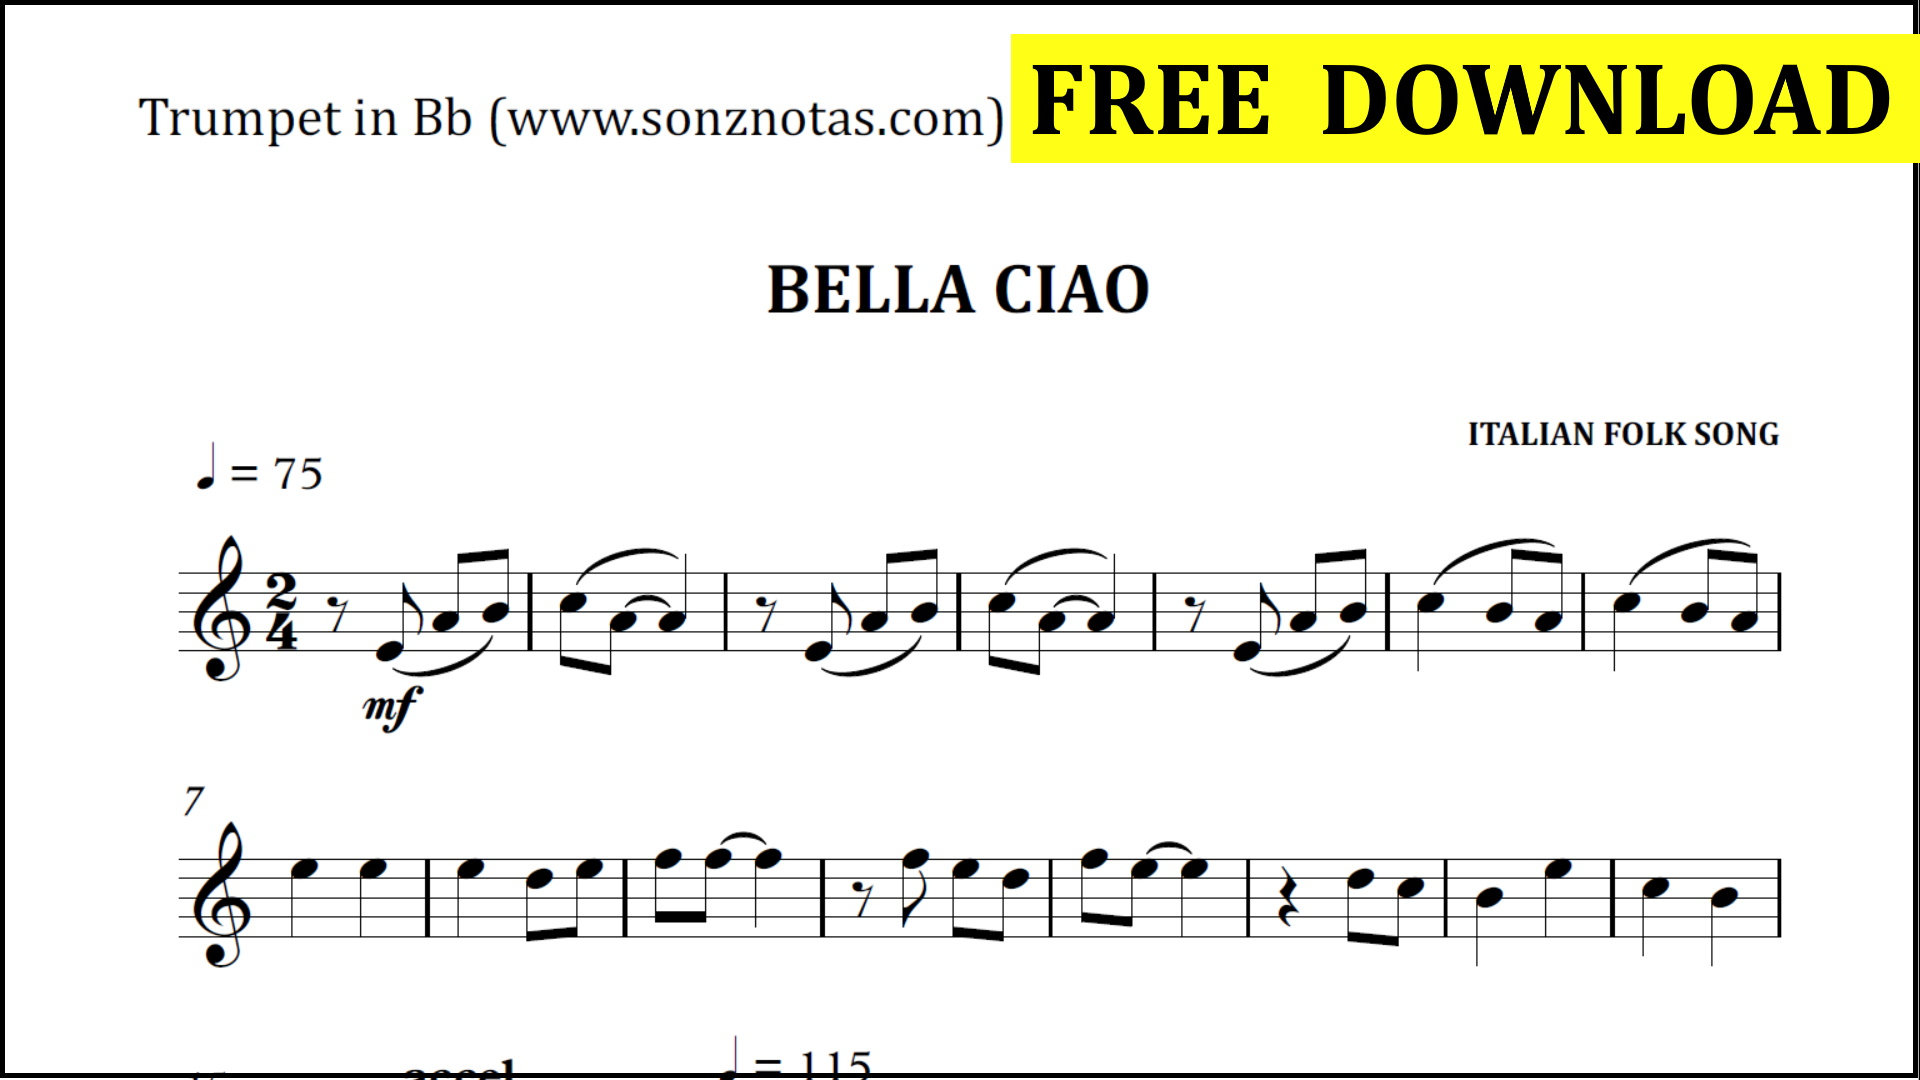 Bella Ciao   Easy Trumpet in Bb   Sheet Music   Free Download   SONZNOTAS